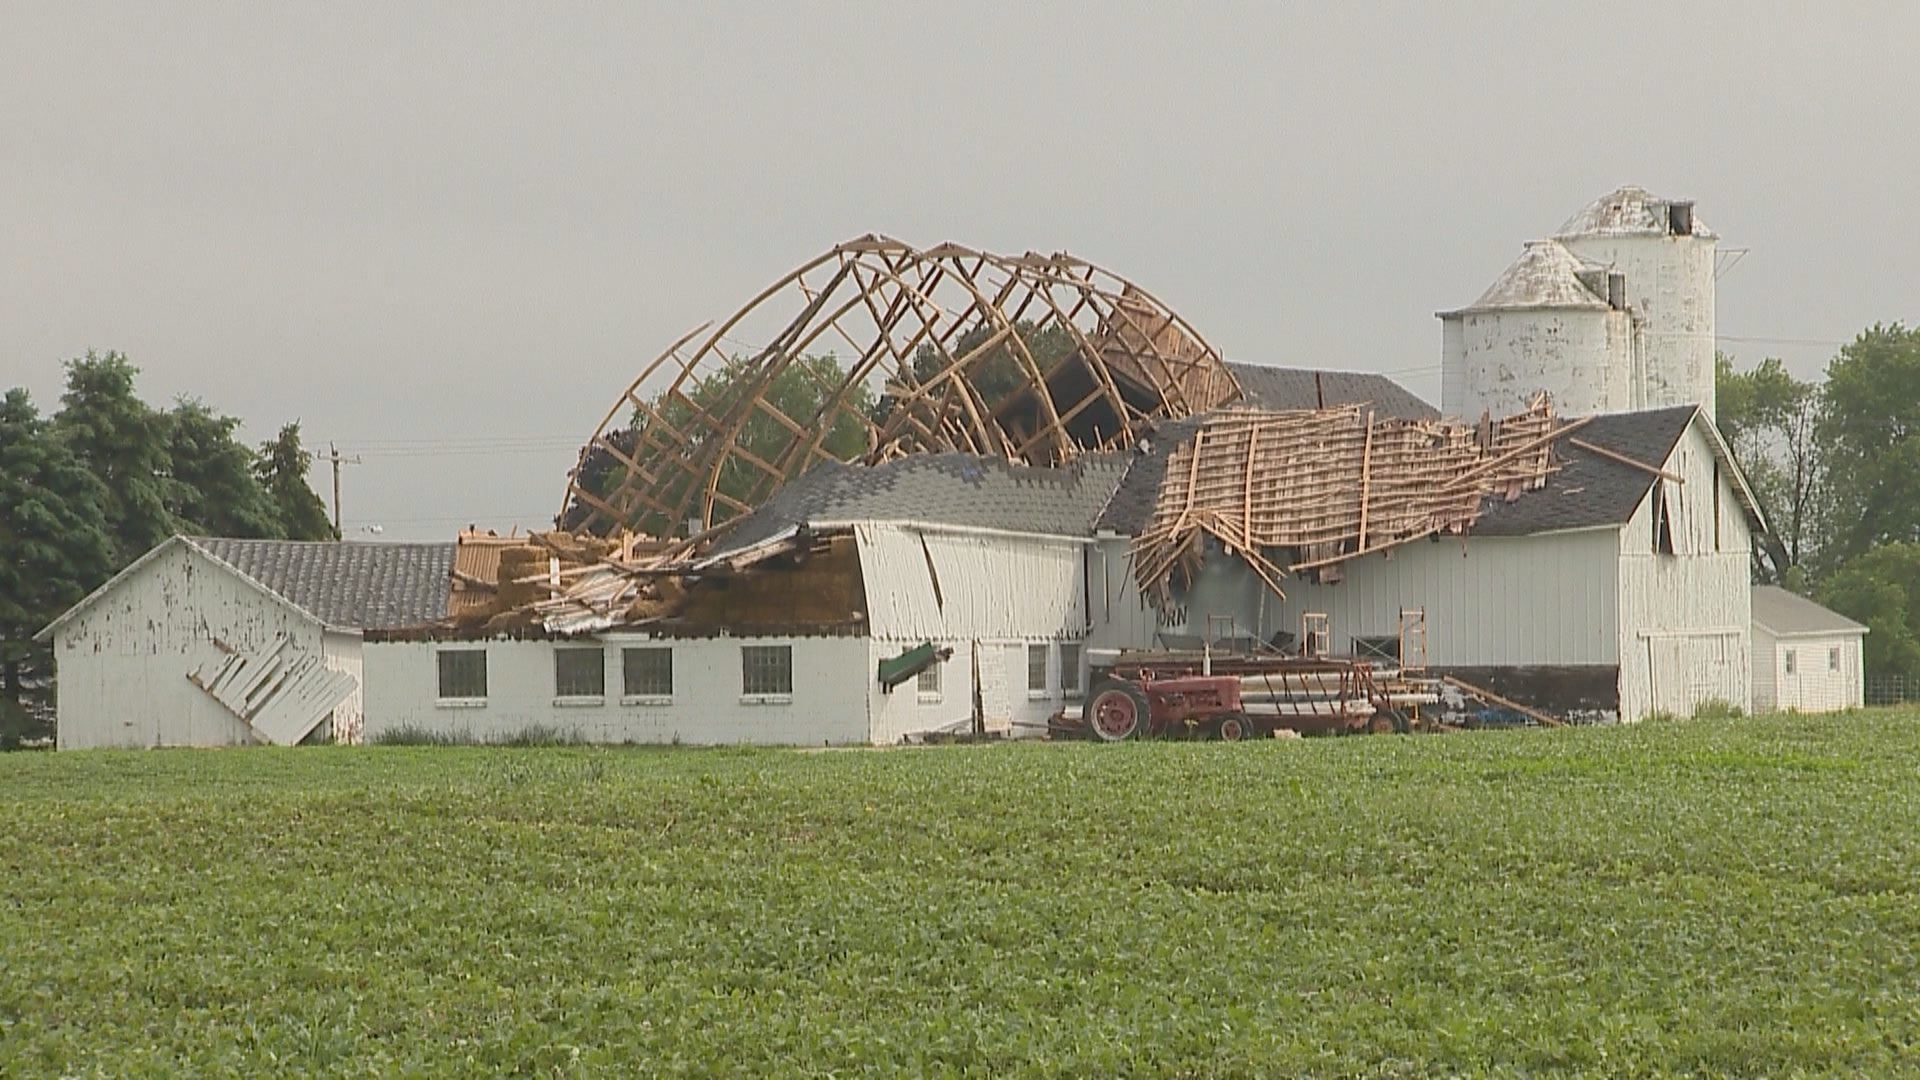 Shawano Co. storm damage from the storm on 6/14/17 (Courtesy: FOX 11)